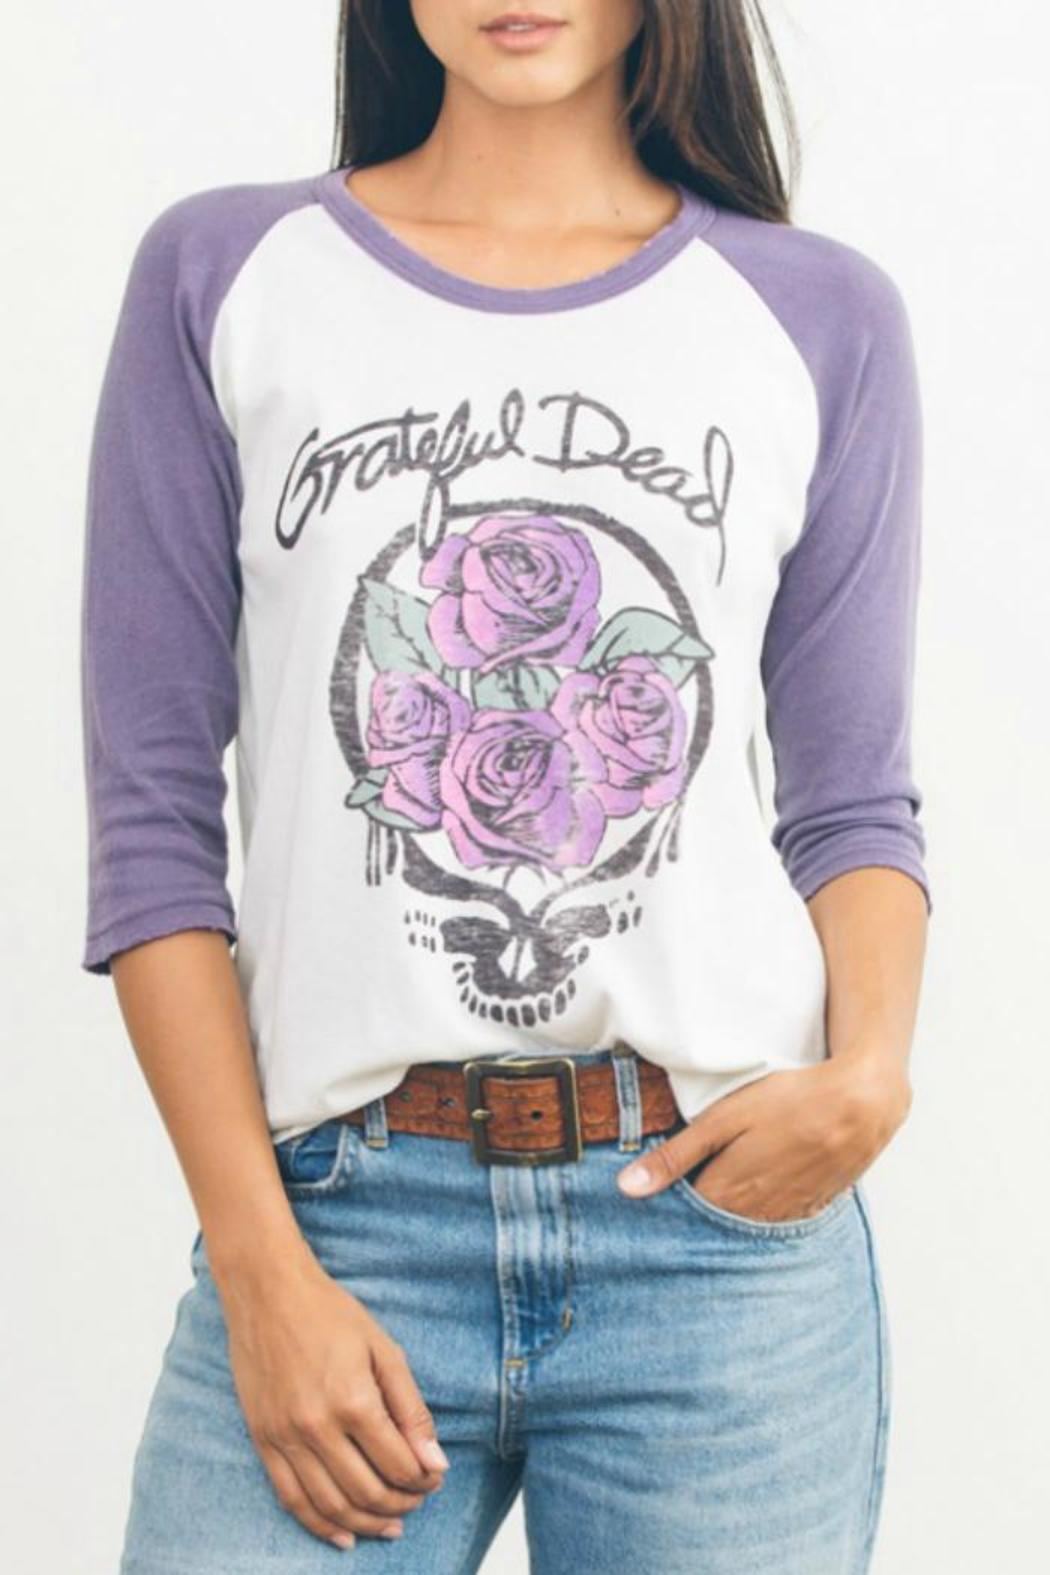 Grateful dead clothing store